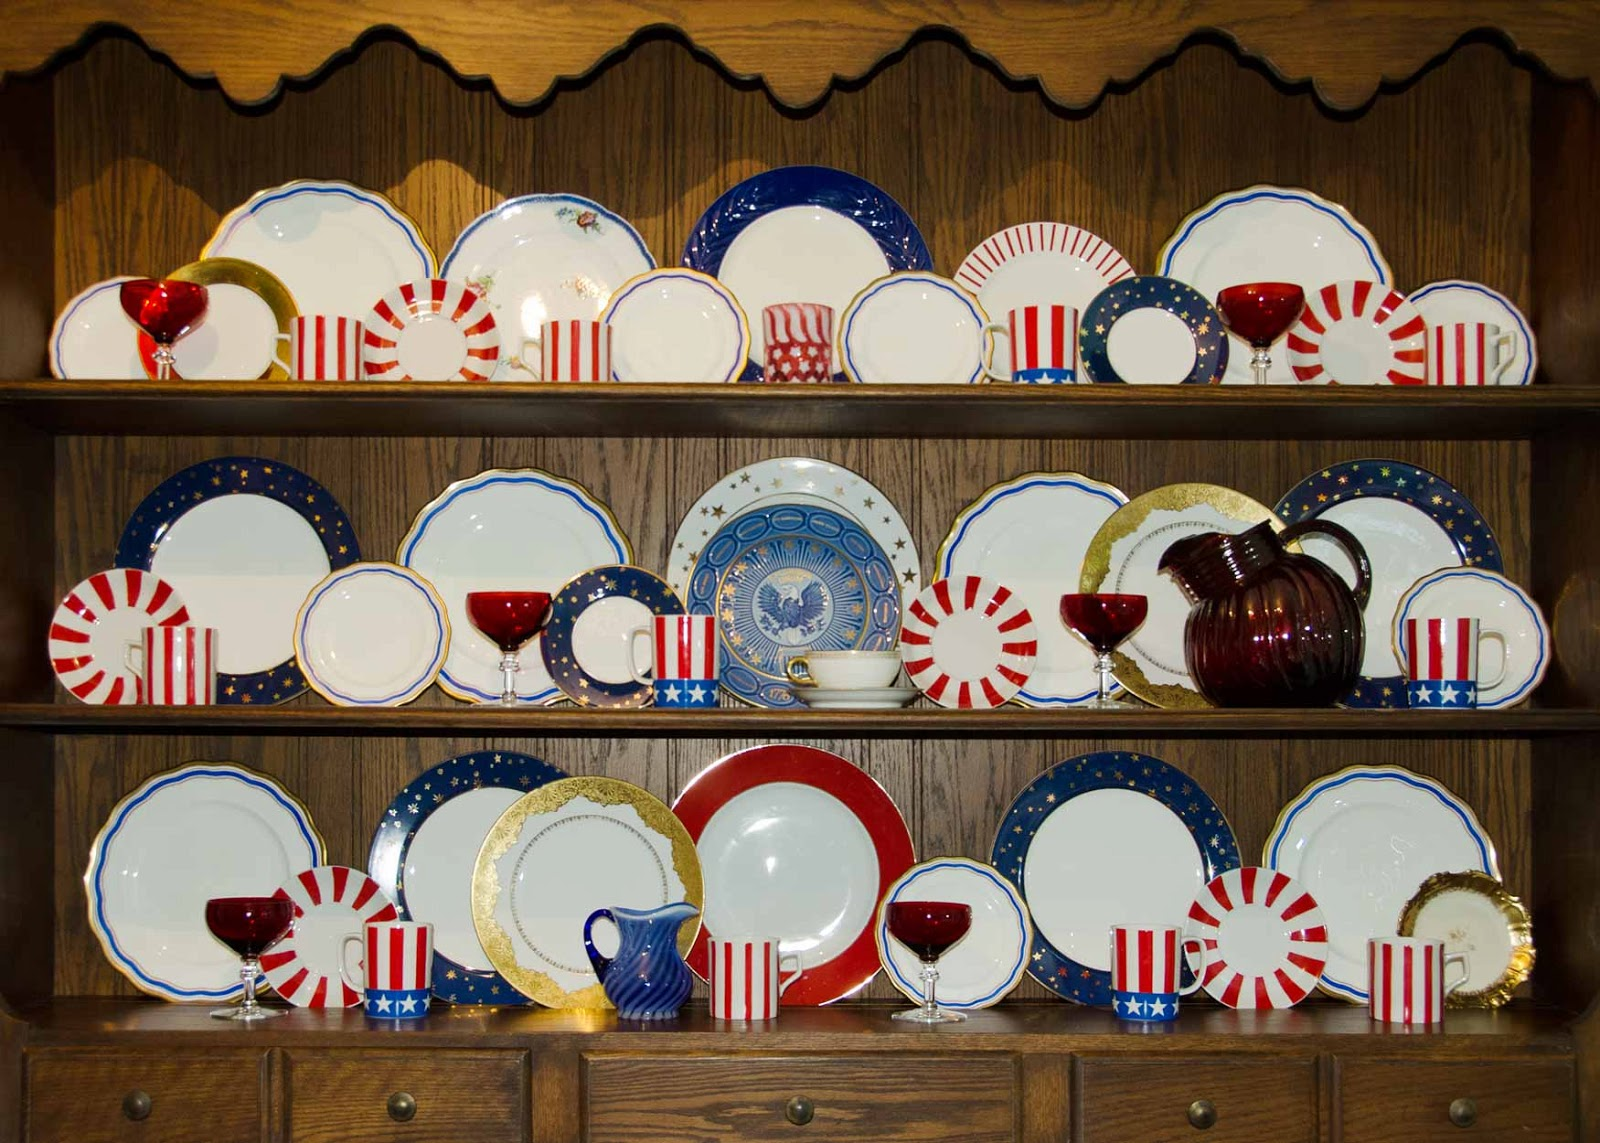 Hutch with vintage china porcelain plates